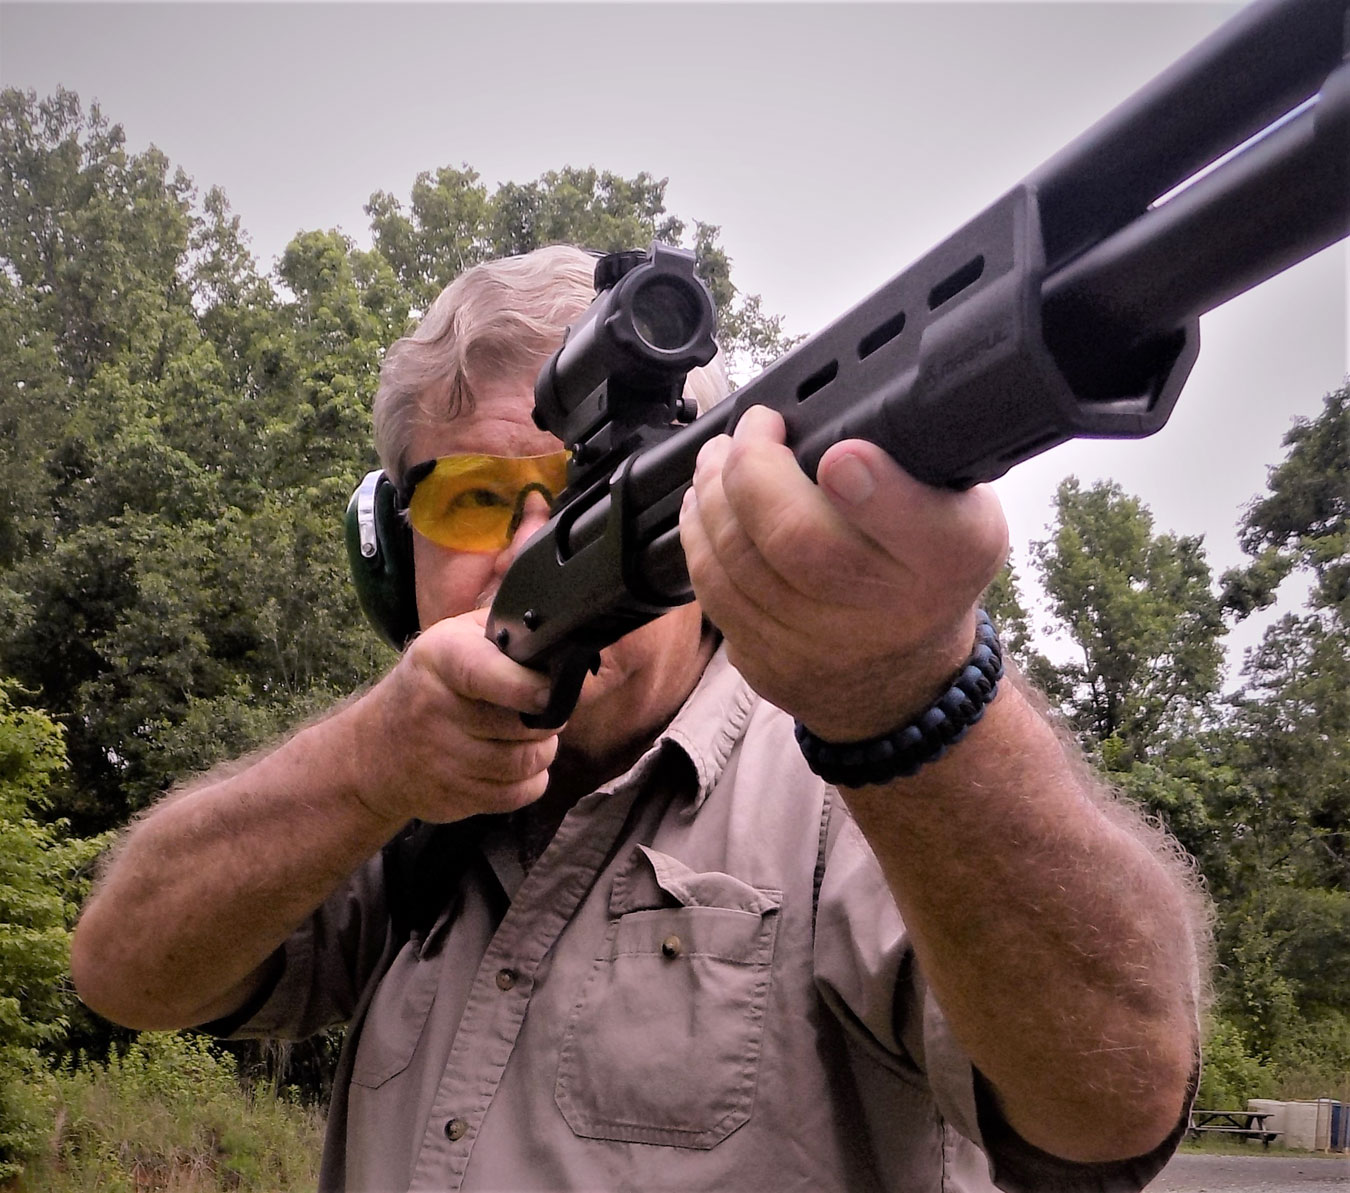 Bob Campbell shooting a shotgun with a red dot scope